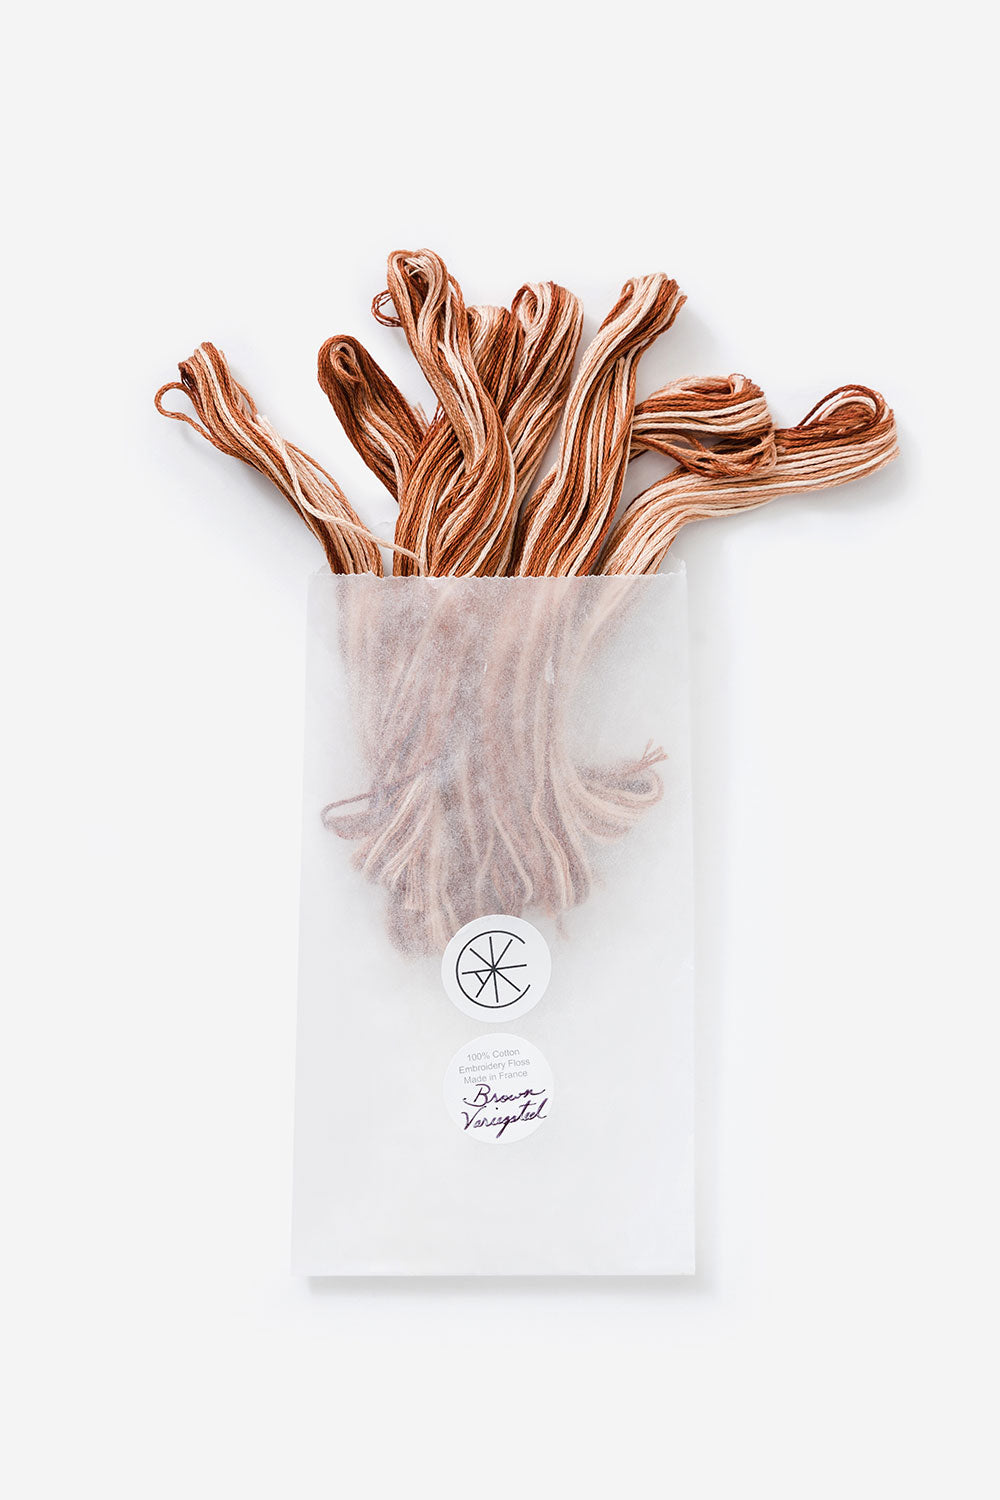 The School of Making Variegated Embroidery Floss Brown Floss